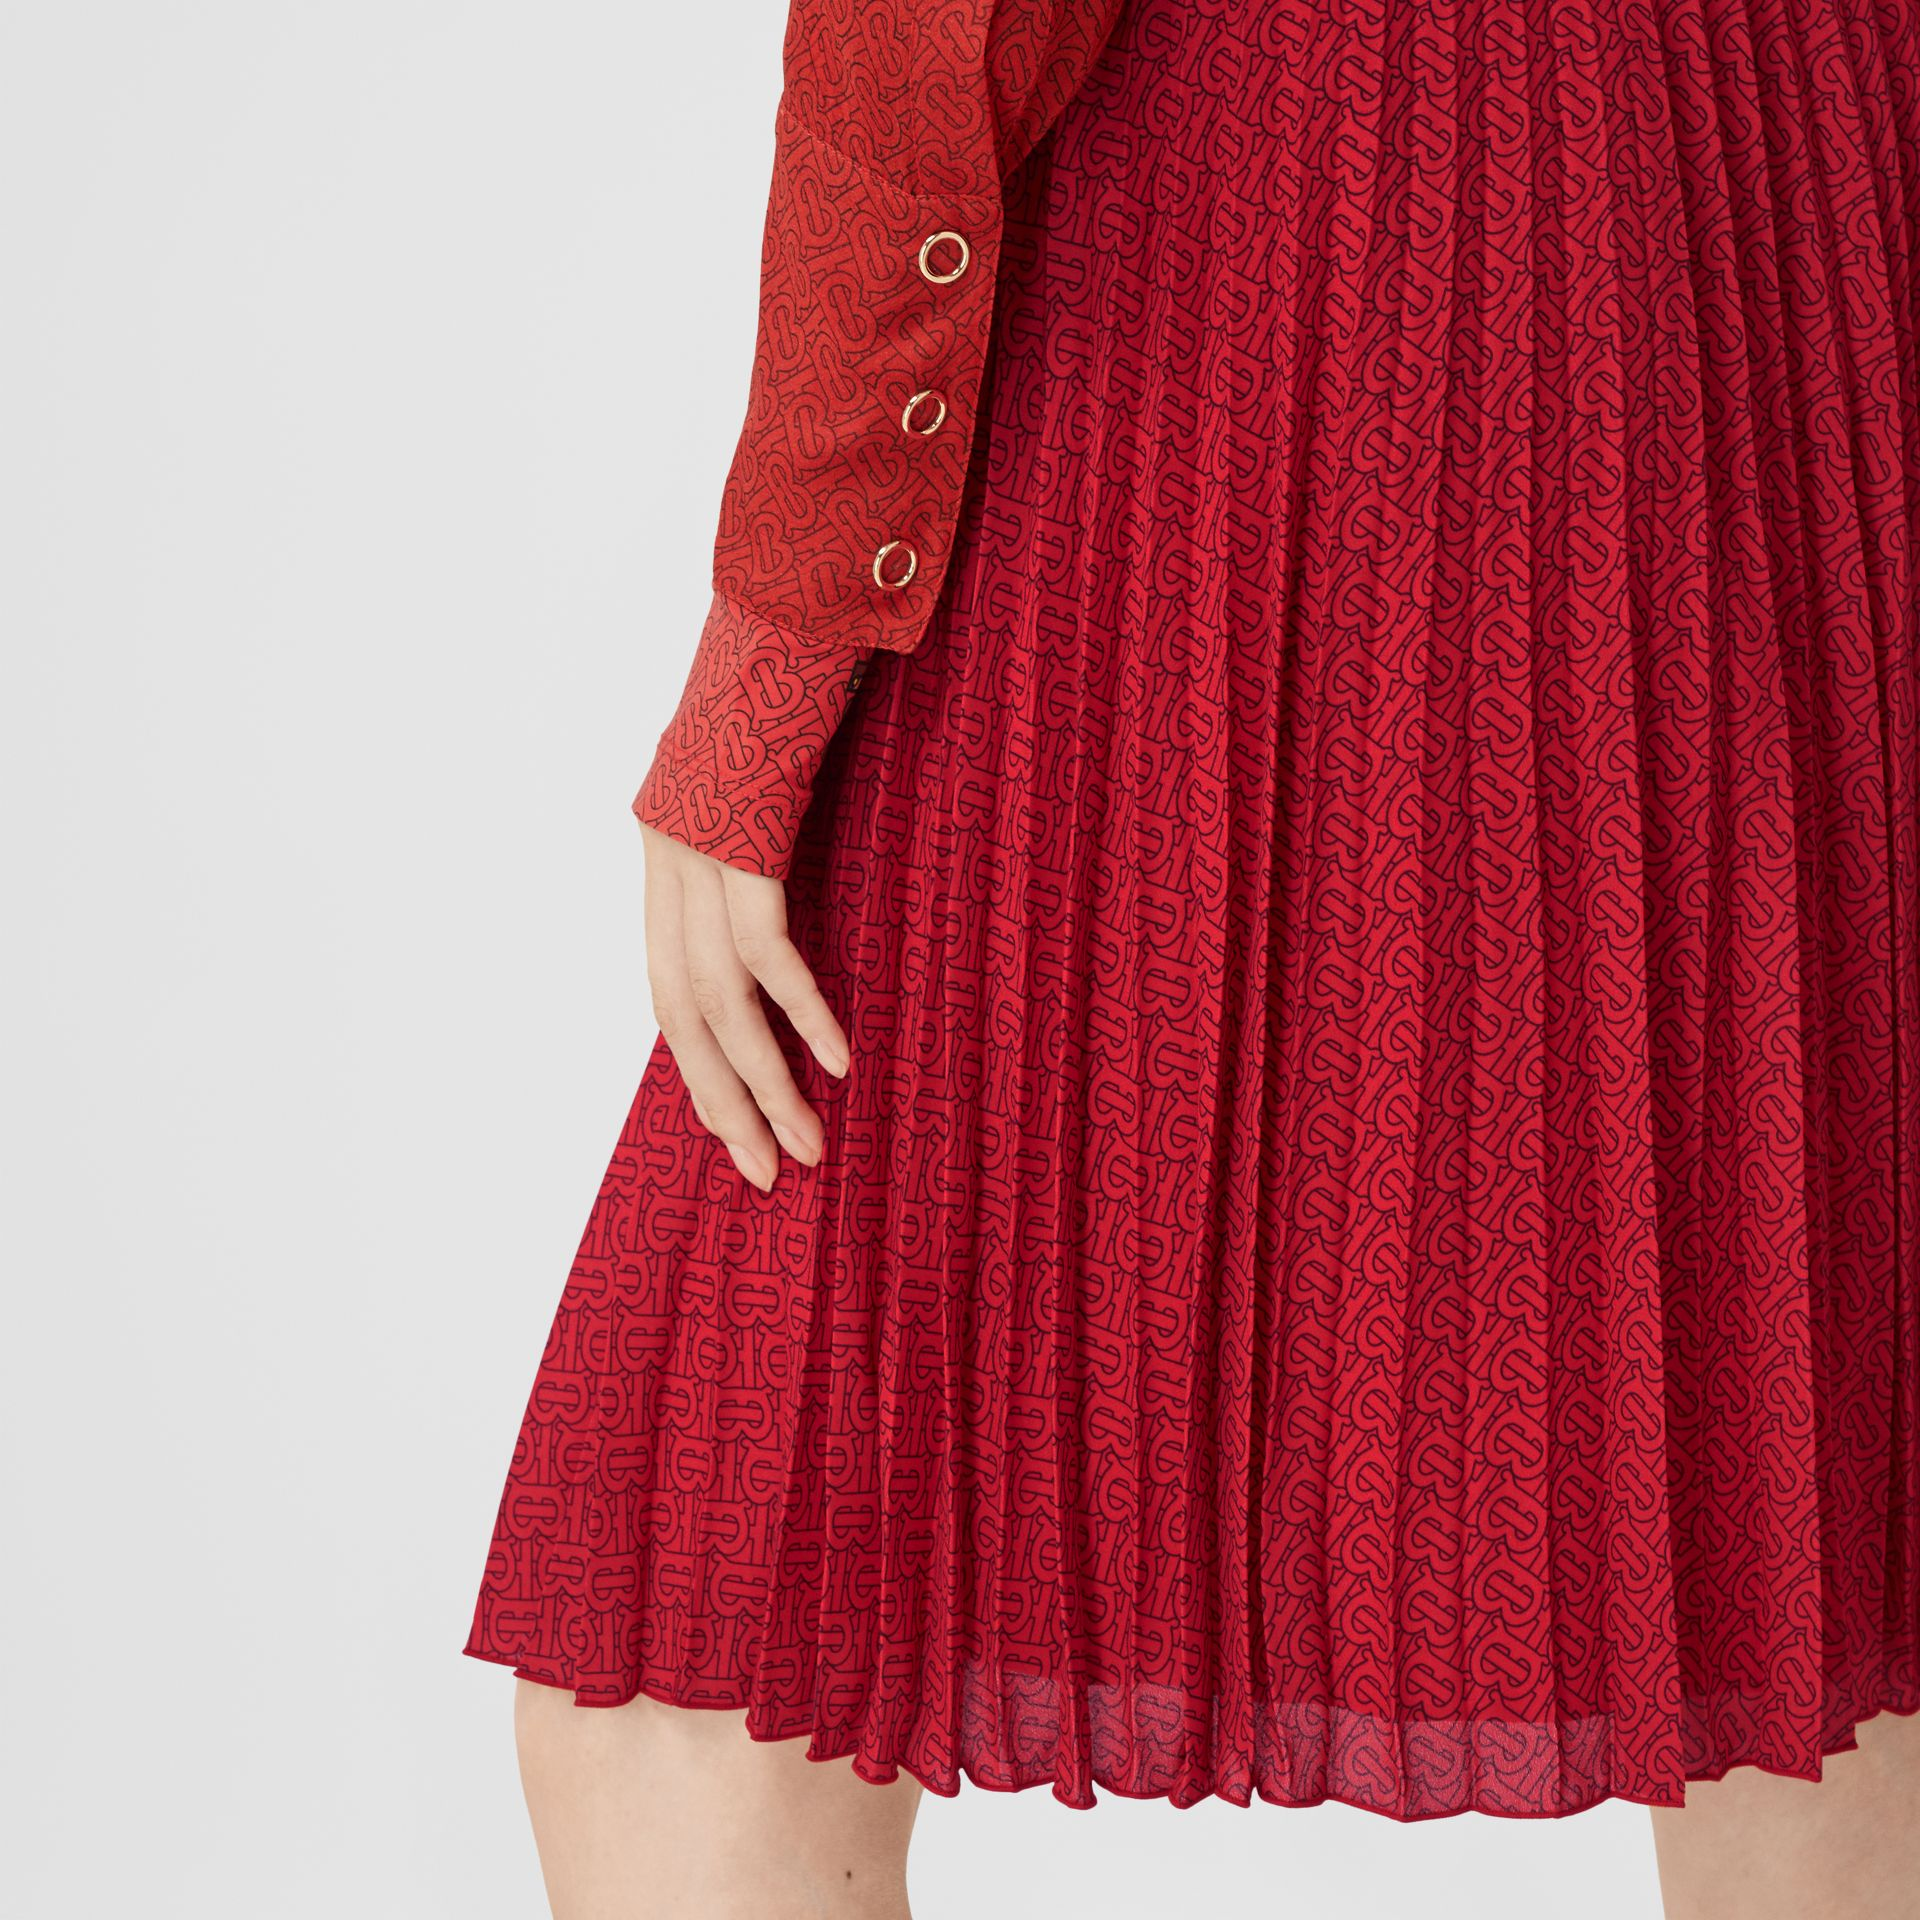 Monogram Print Pleated Skirt in Bright Red - Women | Burberry - gallery image 6